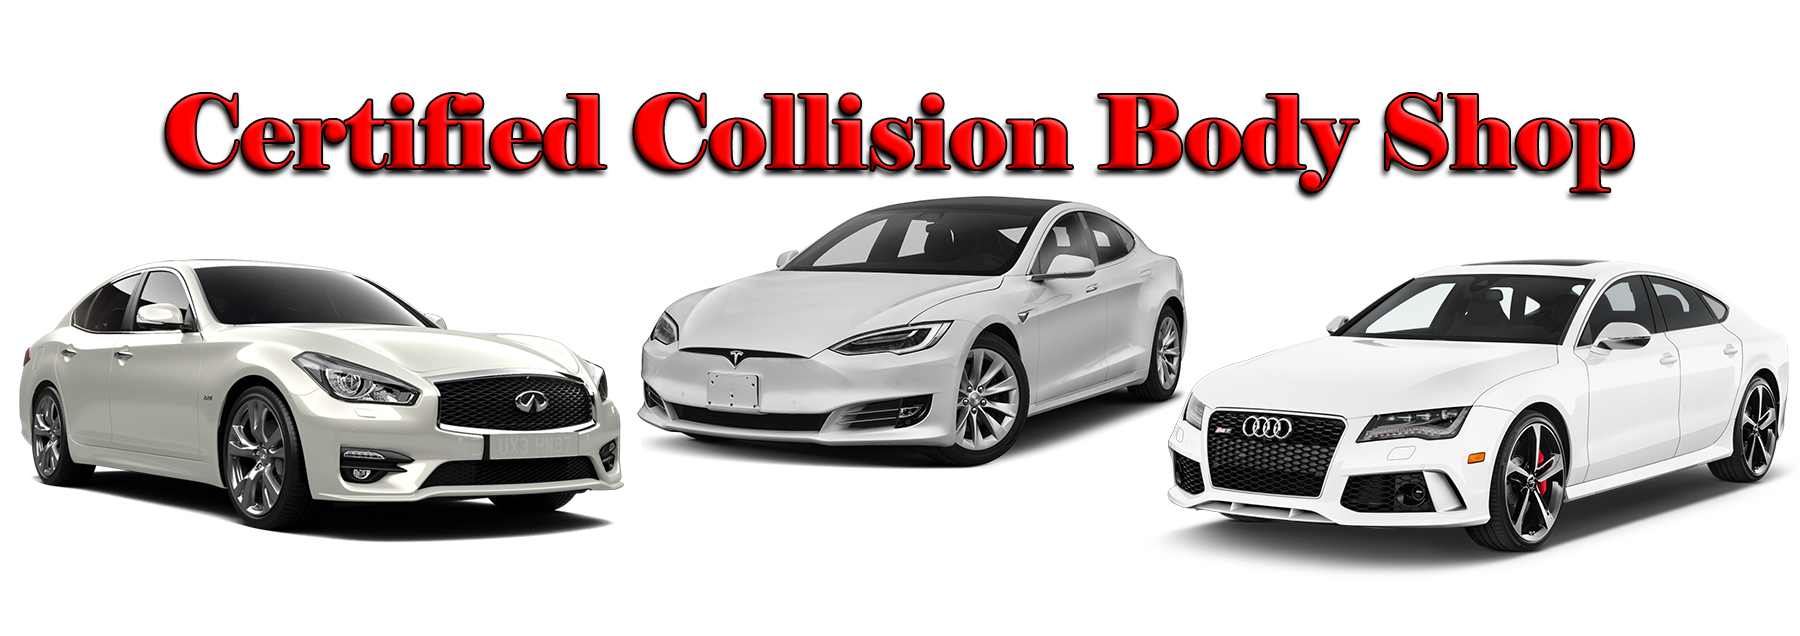 Certified Collision Body Shop - West Delray Collision Center